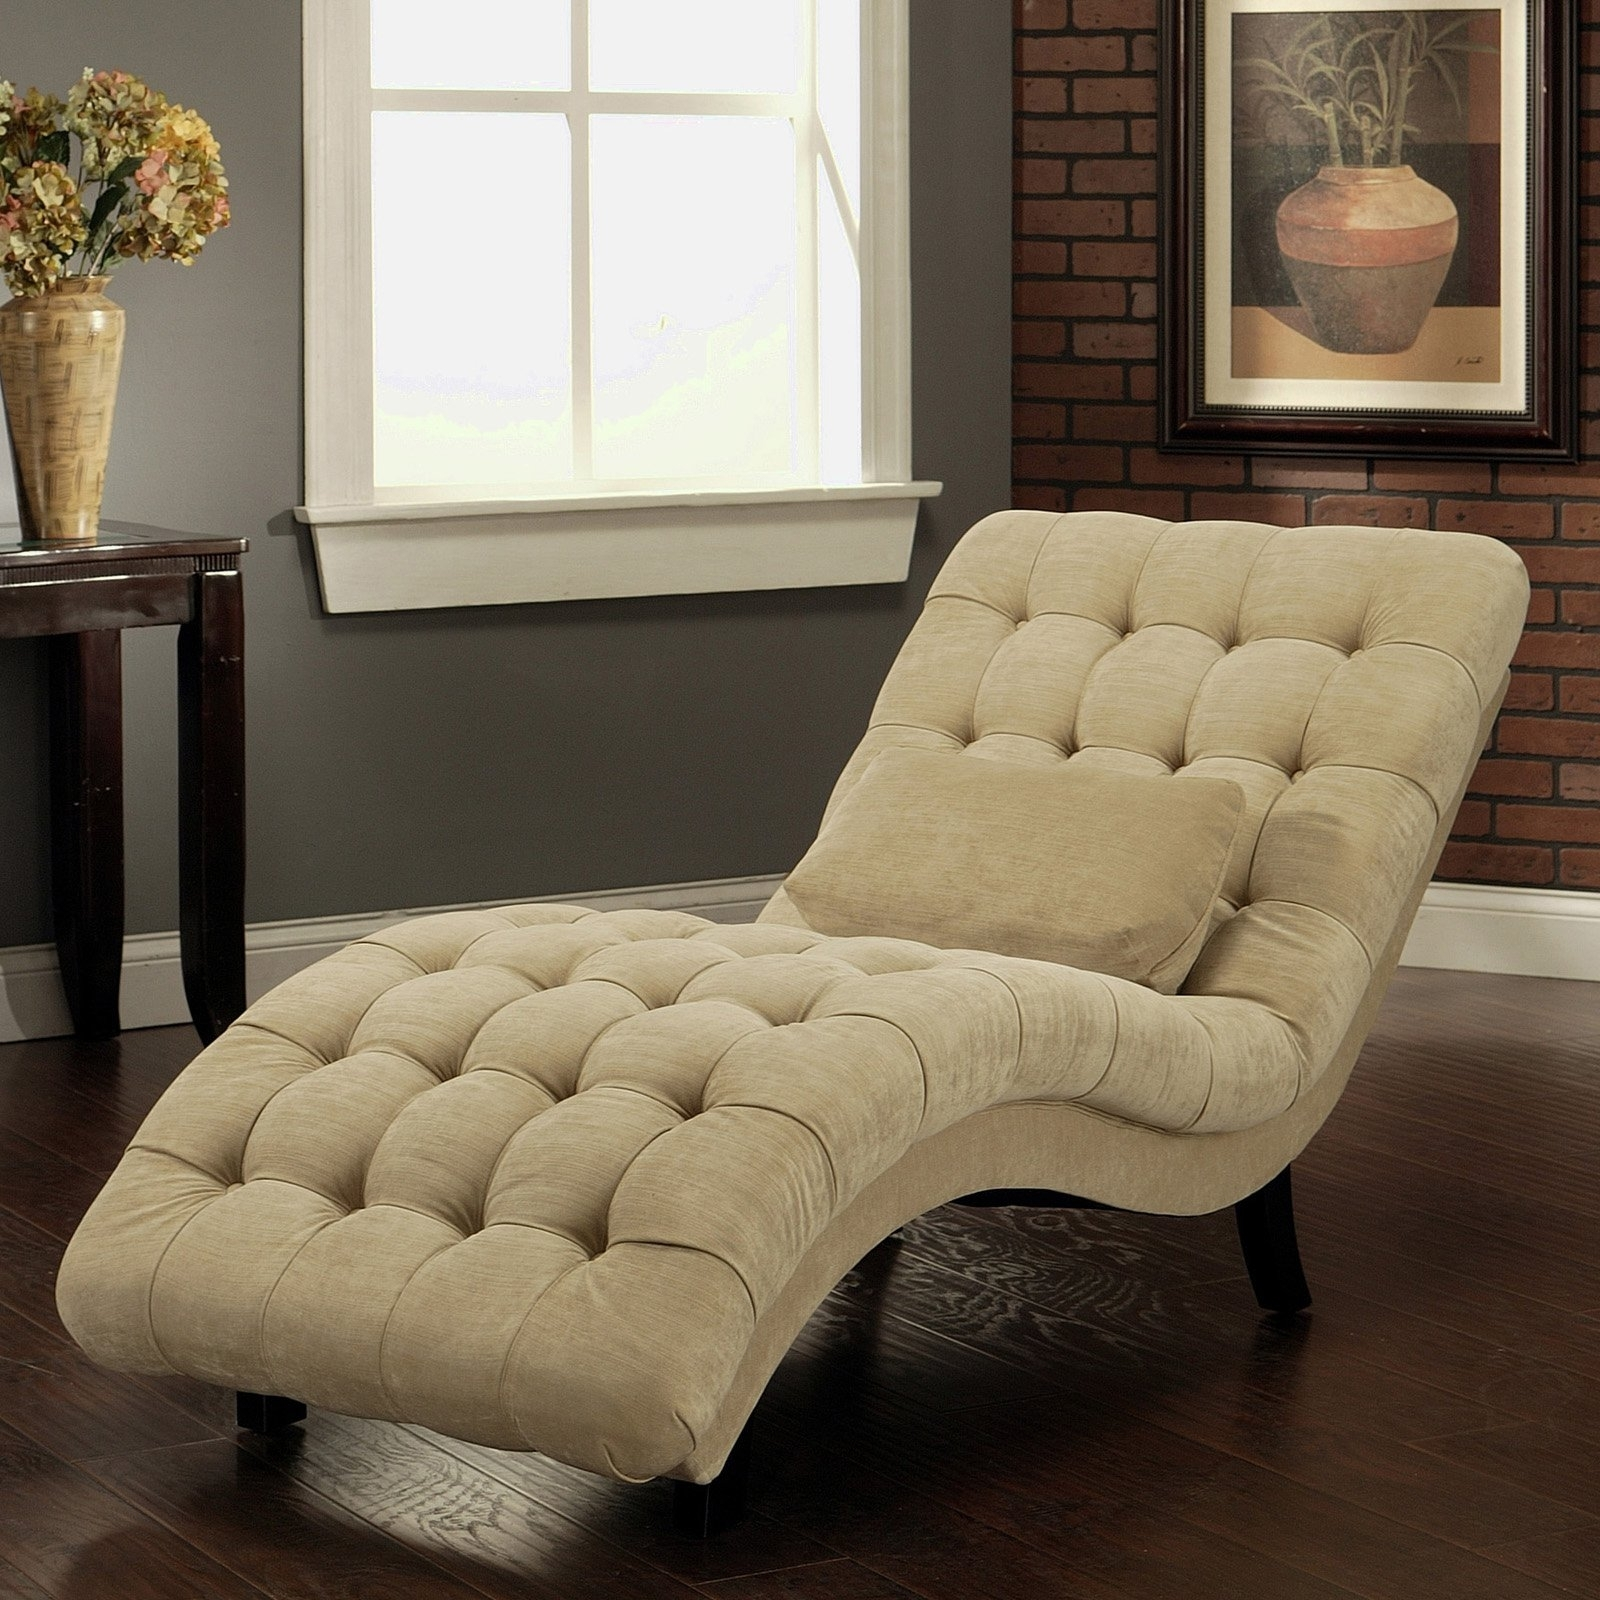 Indoor Chaise Lounges Intended For Well Liked Awesome Indoor Chaise Lounge (Gallery 4 of 15)